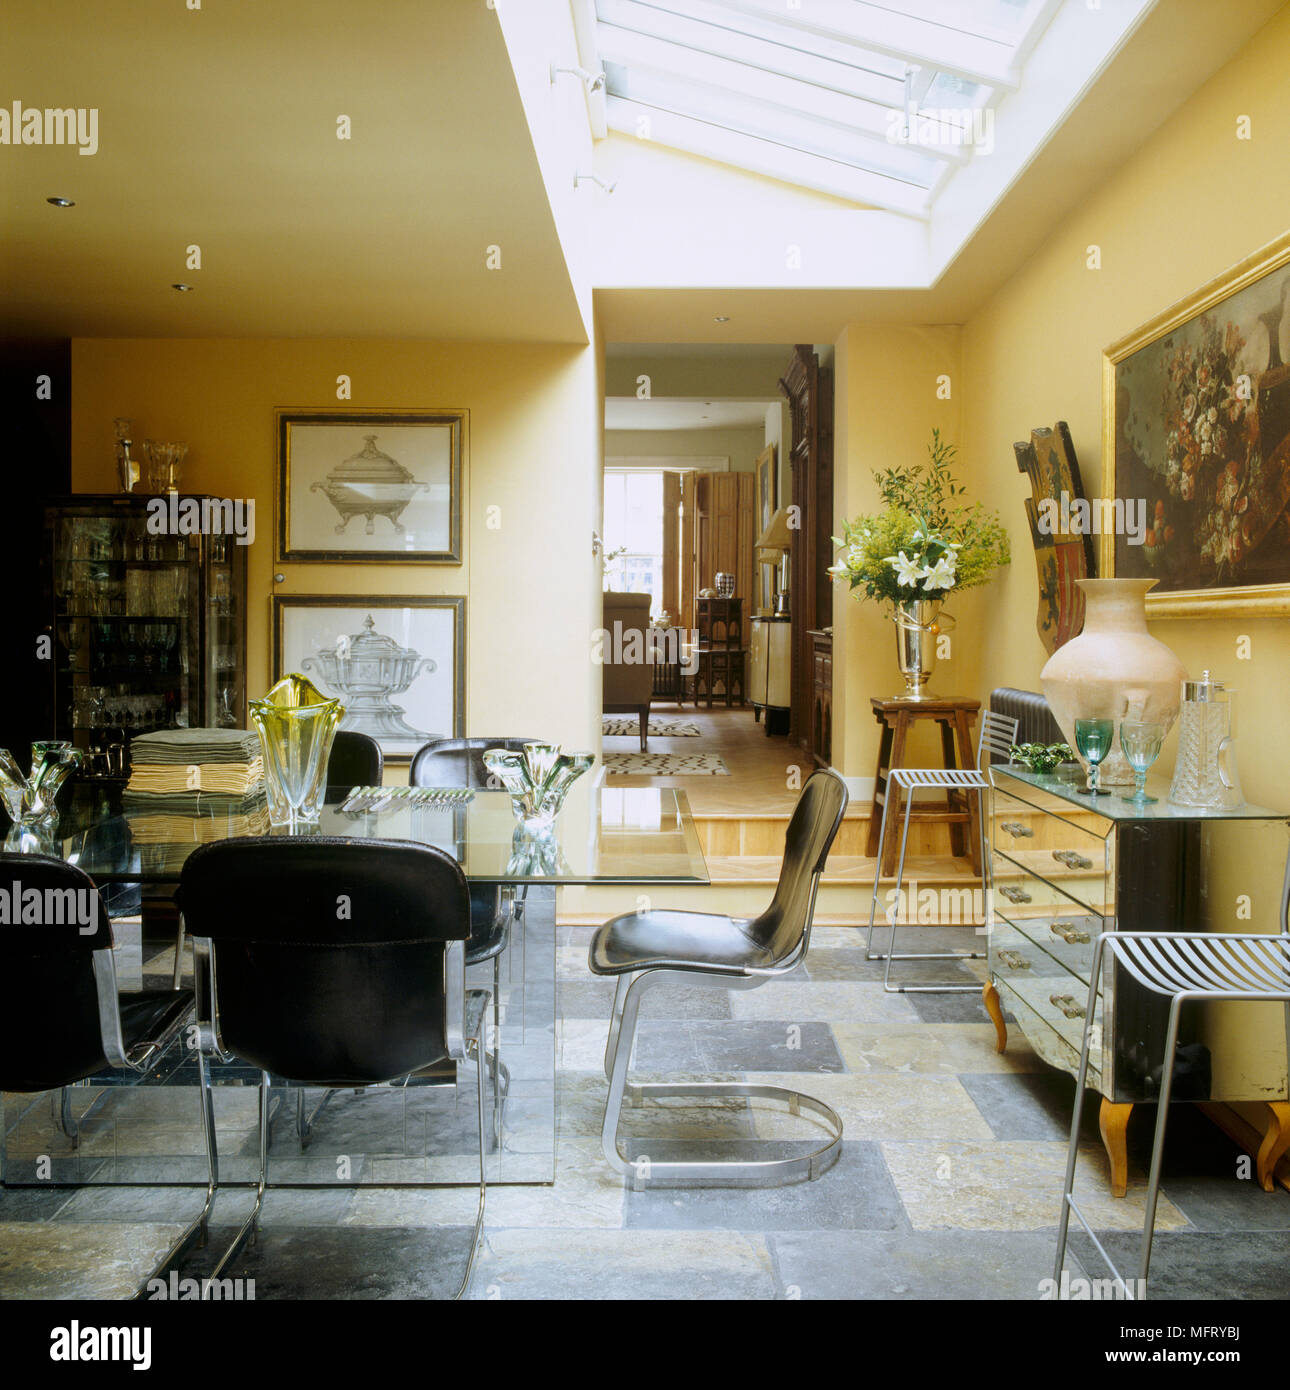 A Modern Open Plan Yellow Dining Room Glass Table Chairs Mirrored Chest Of Drawers Stools Tiled Floor Stock Photo Alamy